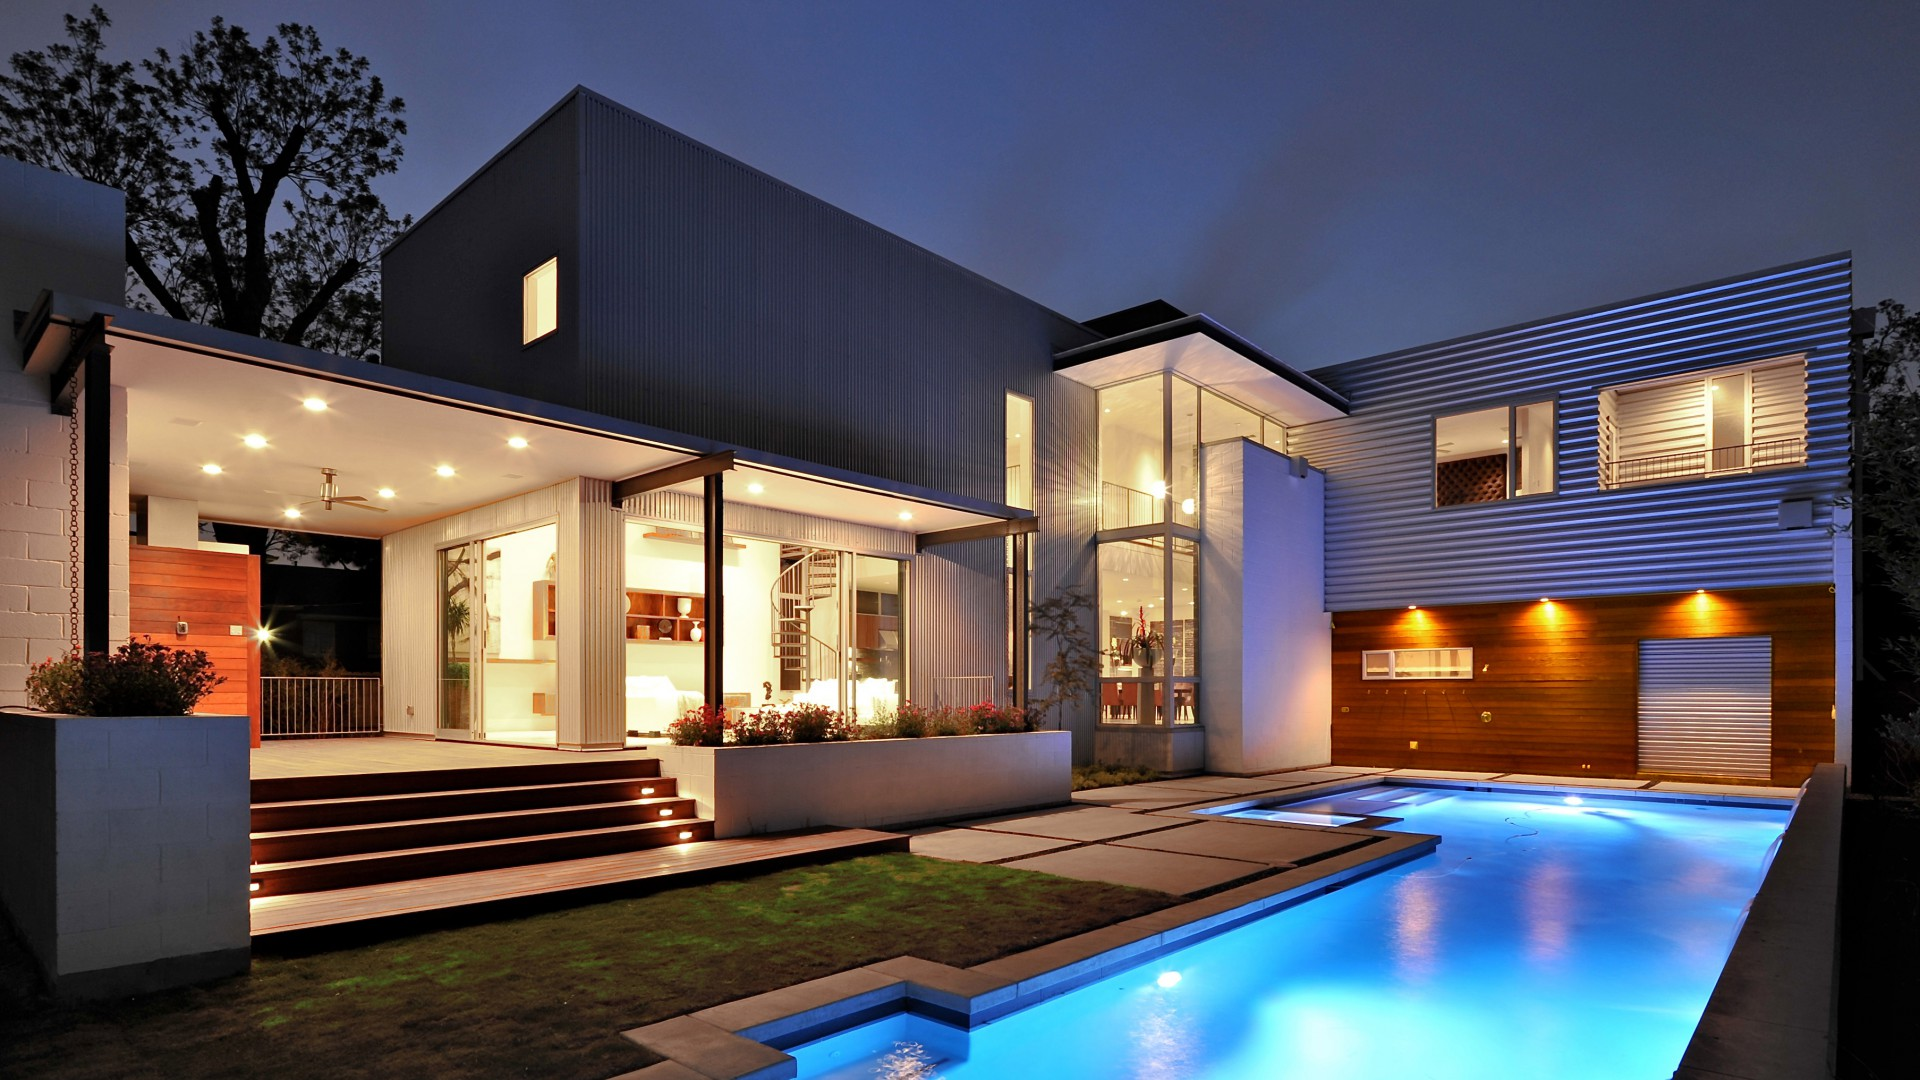 House, Mansion, pool, modern, interior, High-tech, yard (horizontal)